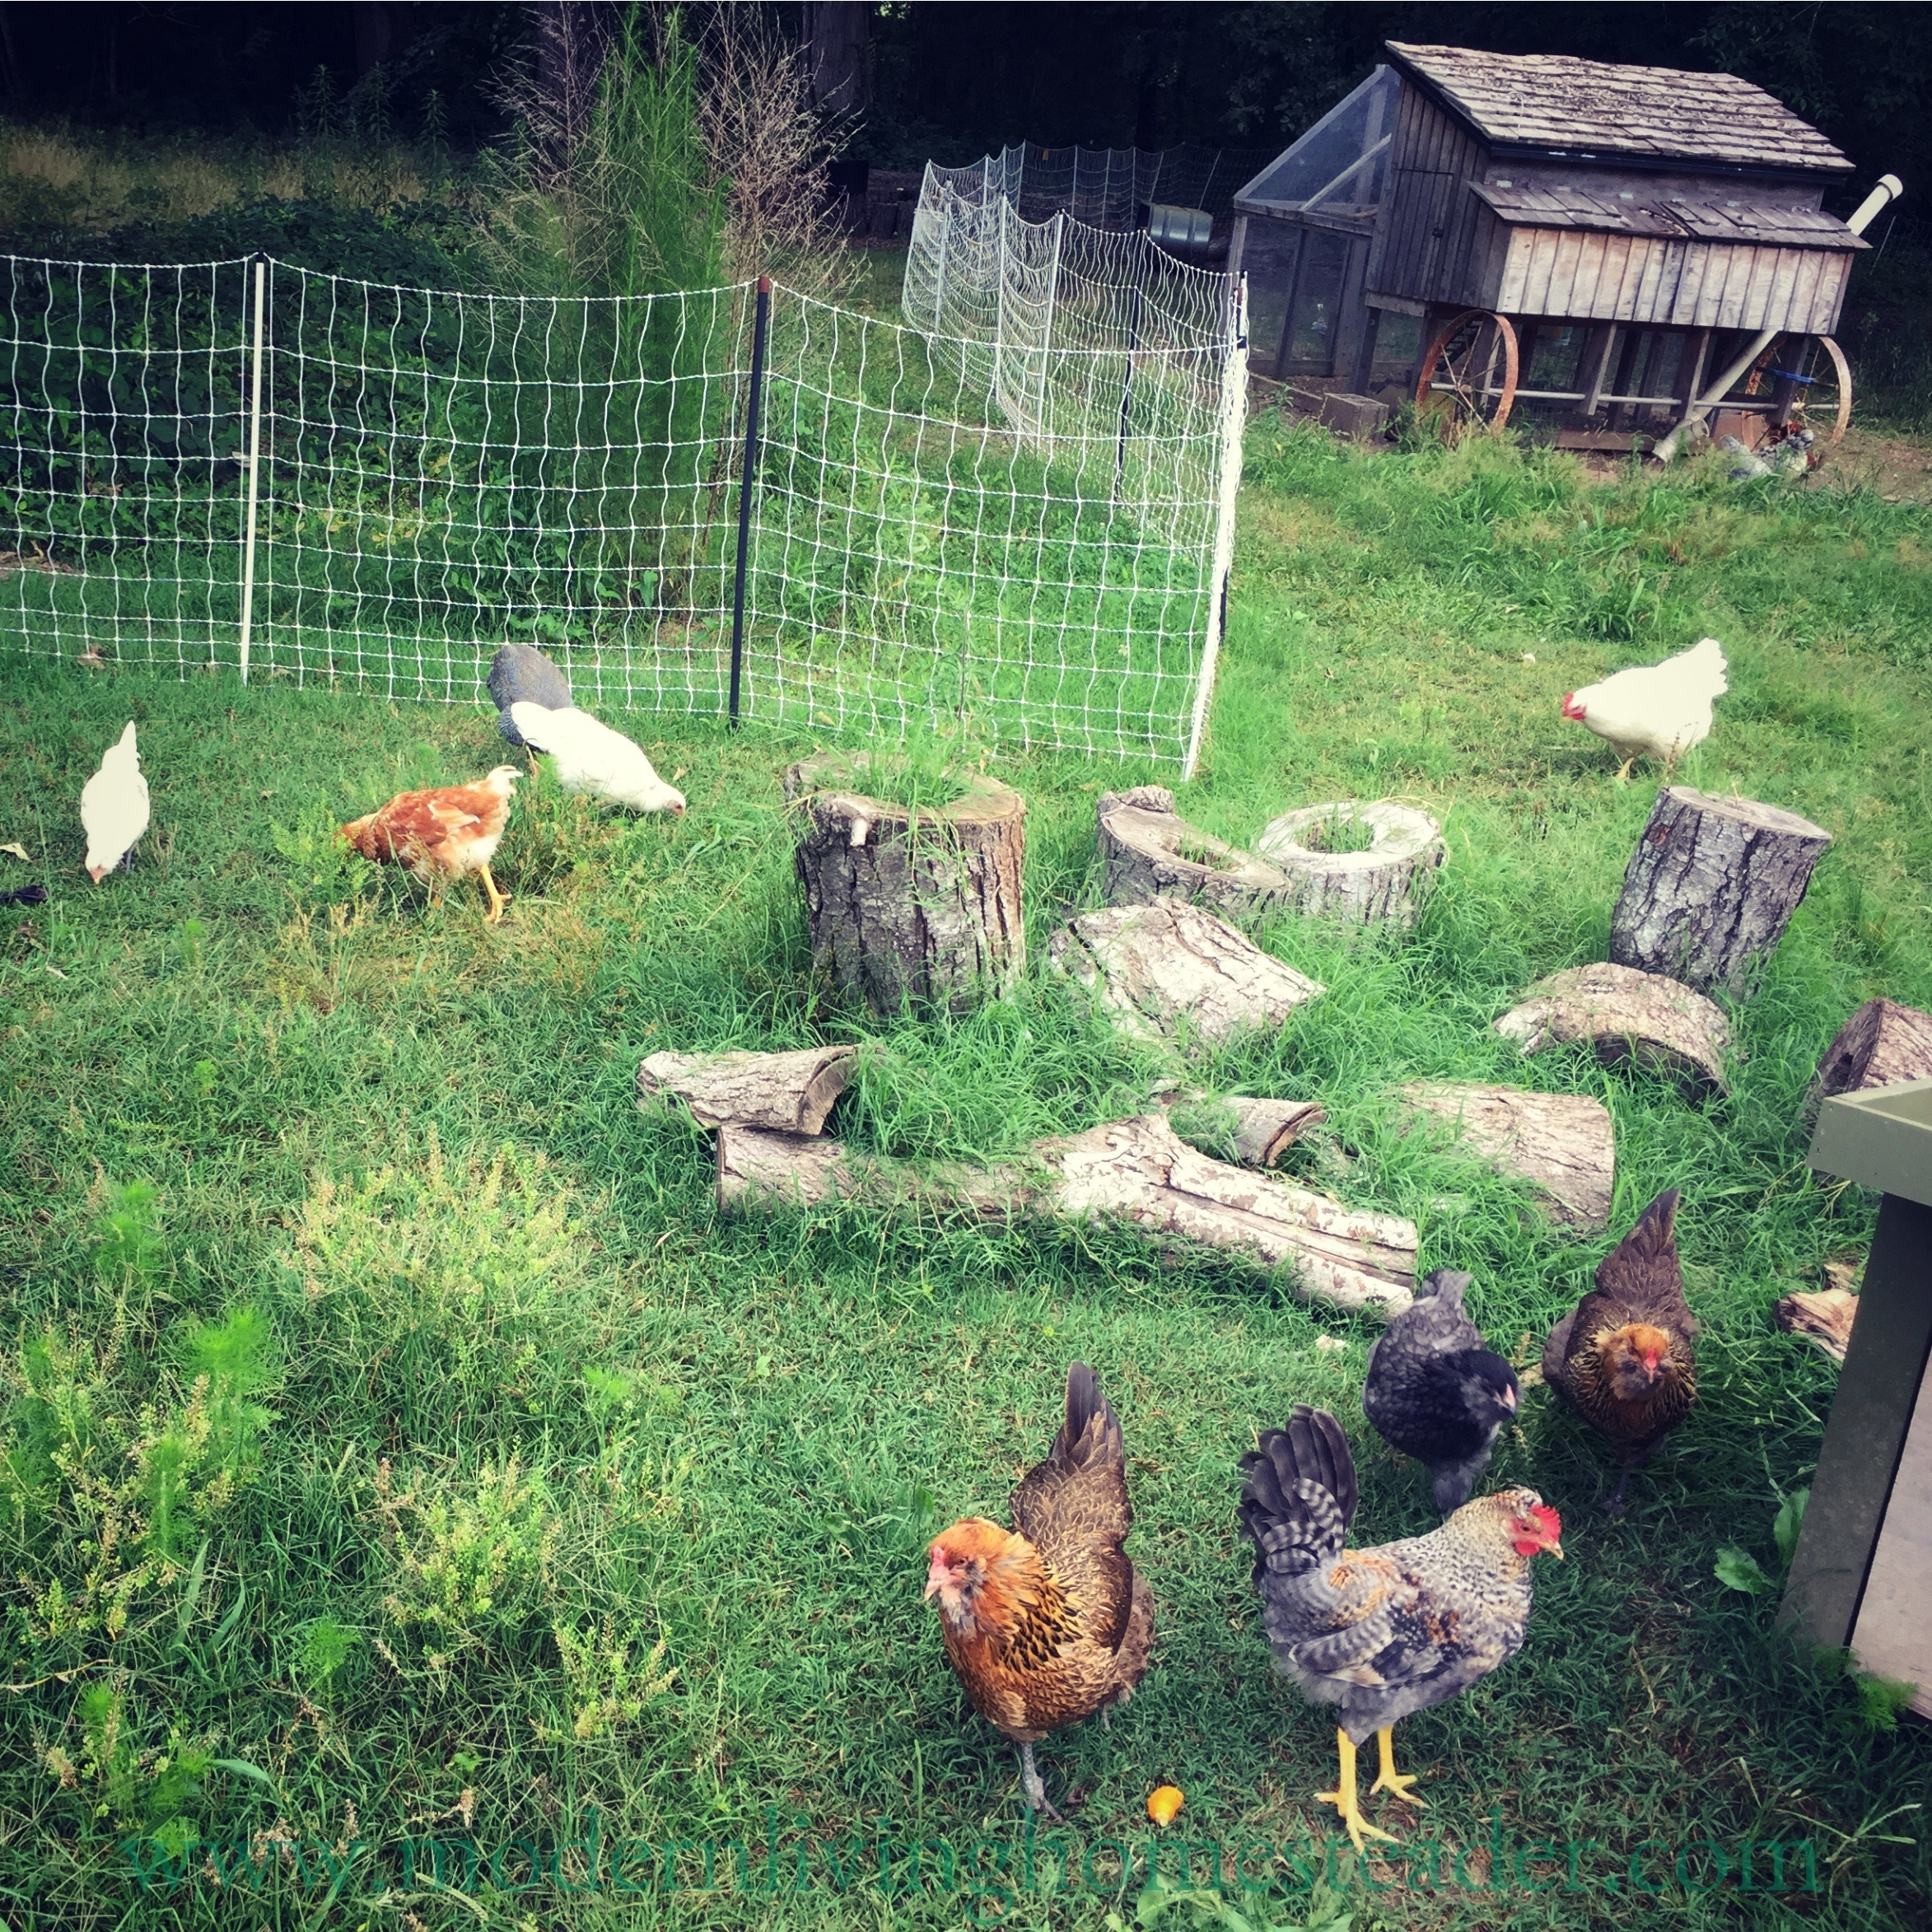 Getting started with chickens doesn't need to be overwhelming! Follow this simple guide to start your own healthy, happy chicken flock. www.modernlivinghomesteader.com